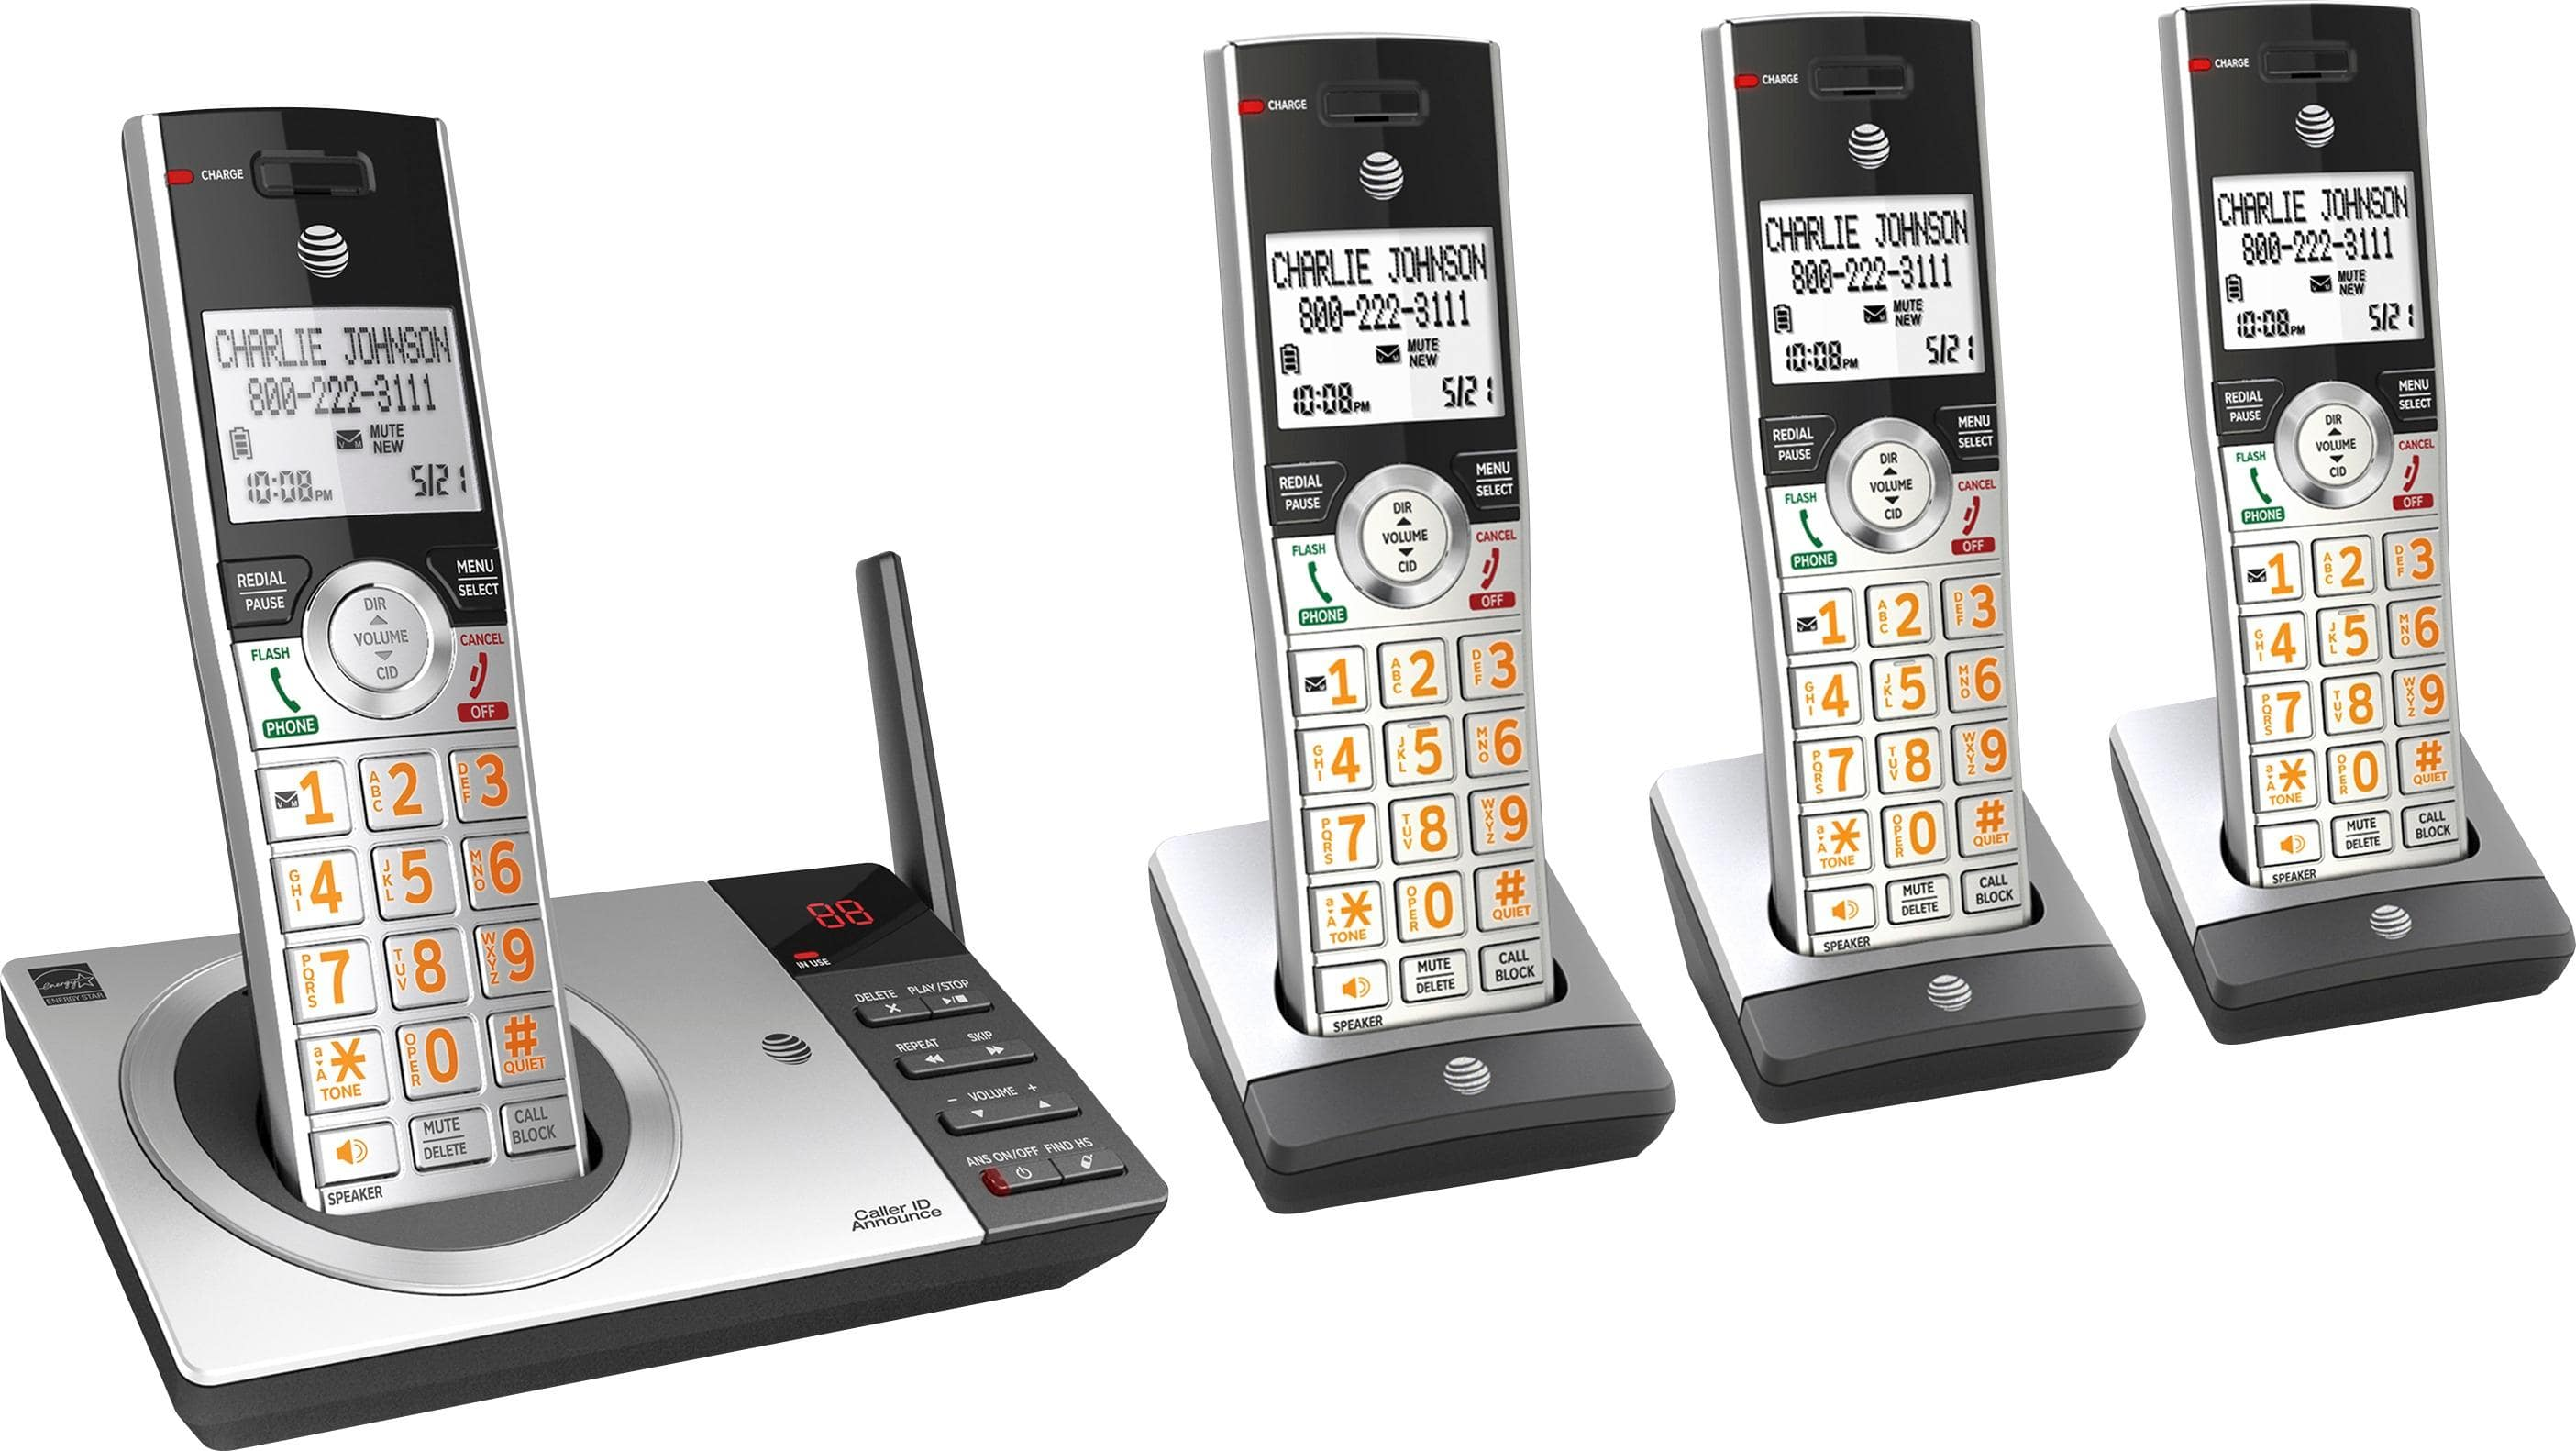 AT&T DECT 6.0 Expandable Cordless Phone with Answering System, Silver/Black with 4 Handsets, $62.88, Amazon